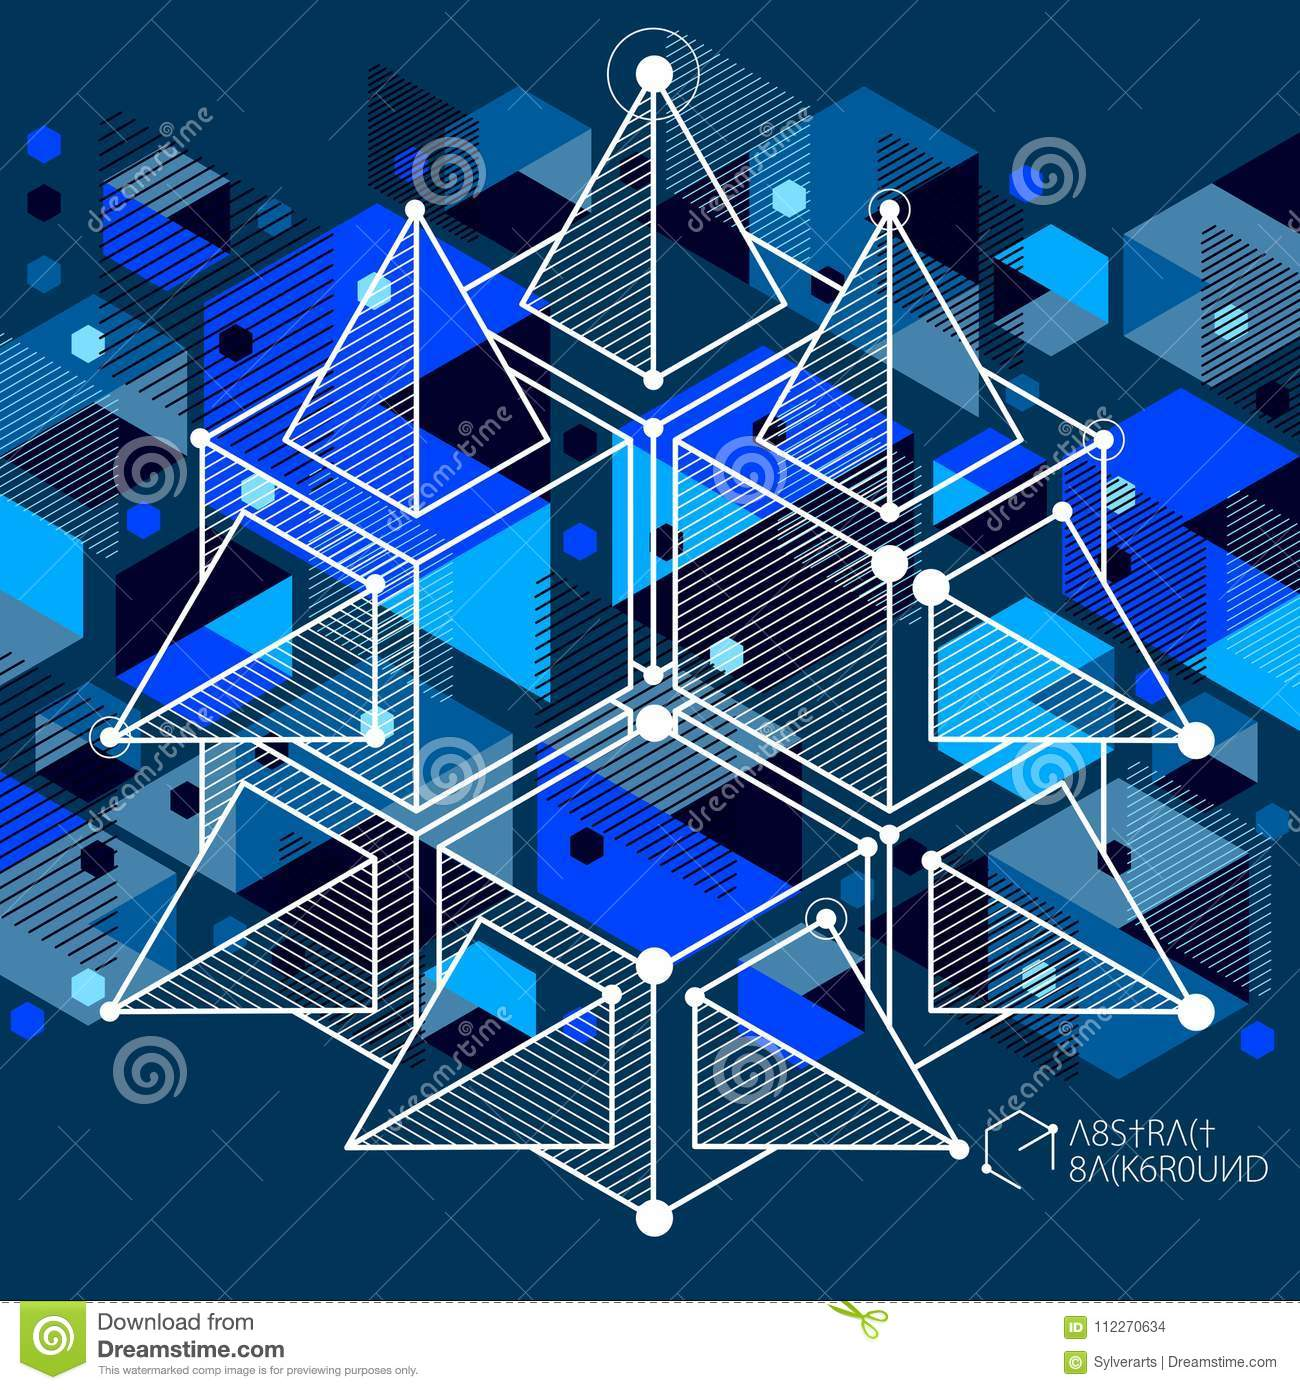 Mechanical Scheme Dark Blue Vector Engineering Drawing With 3D Cubes And Geometric Elements Technological Wallpaper Made Honeycombs